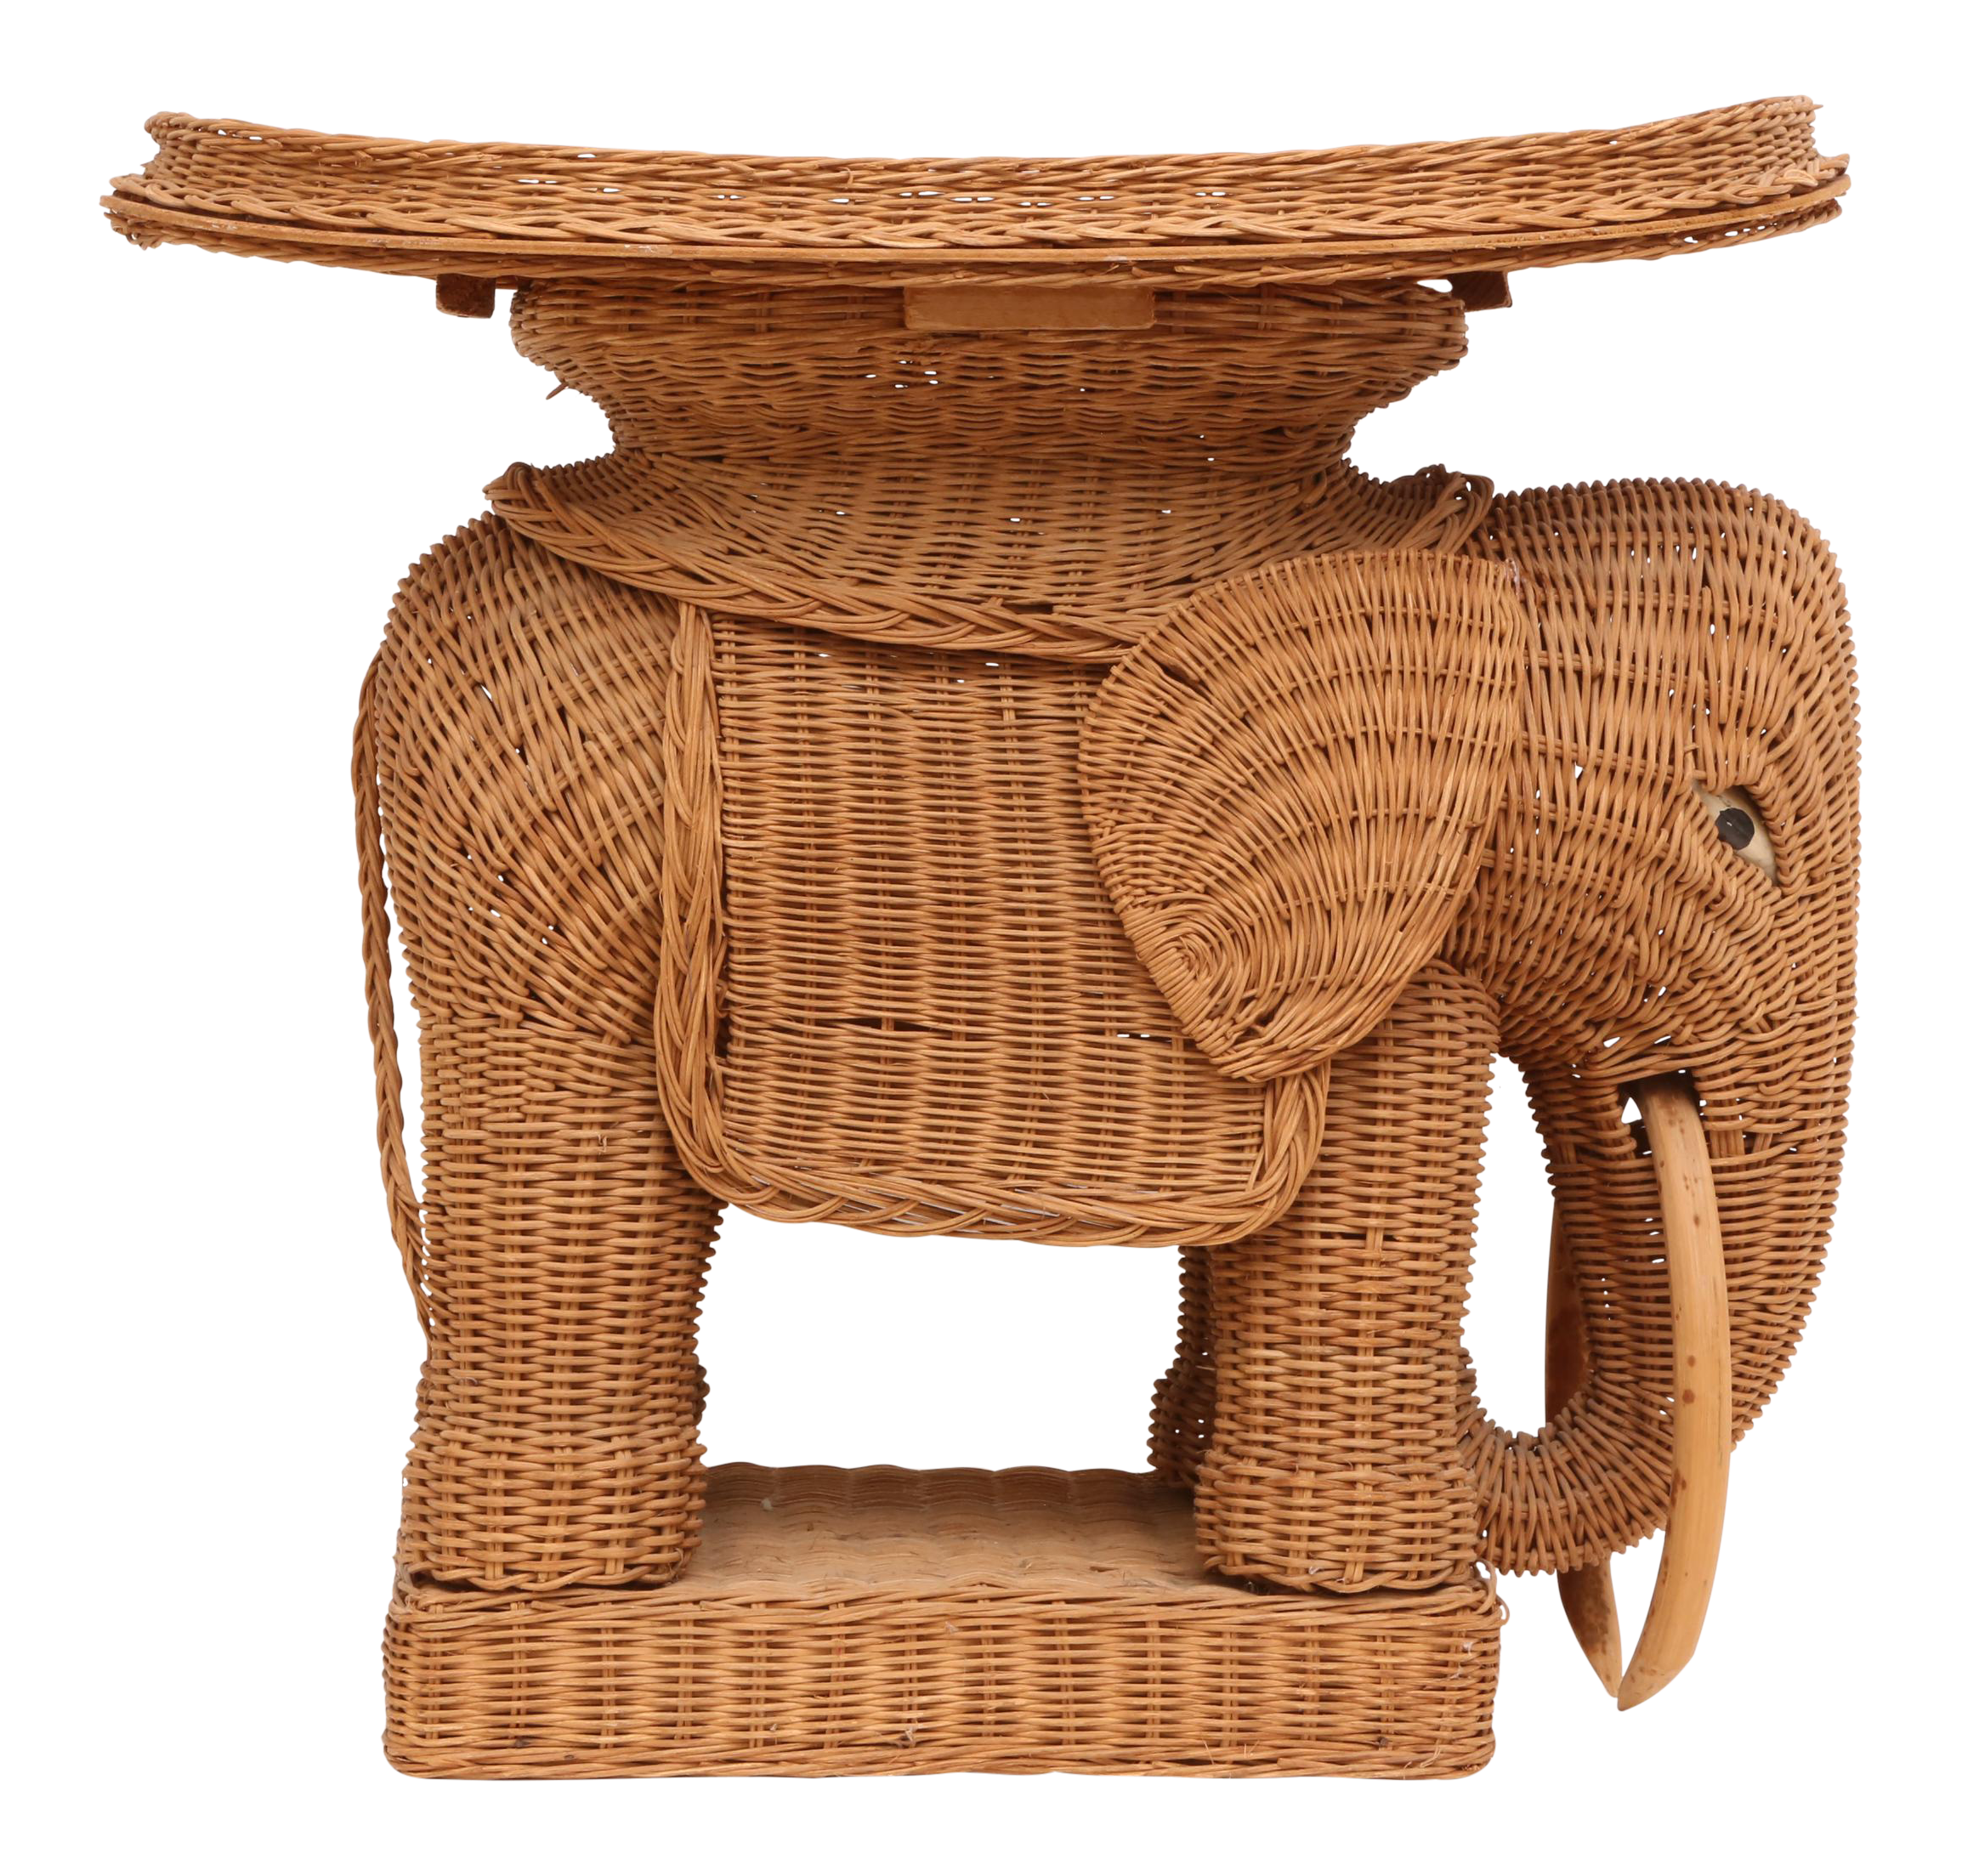 vintage rattan wicker elephant side table chairish foldable accent brown bistro height console chest ashley furniture coffee set mirrored couch patio clearance butler specialty